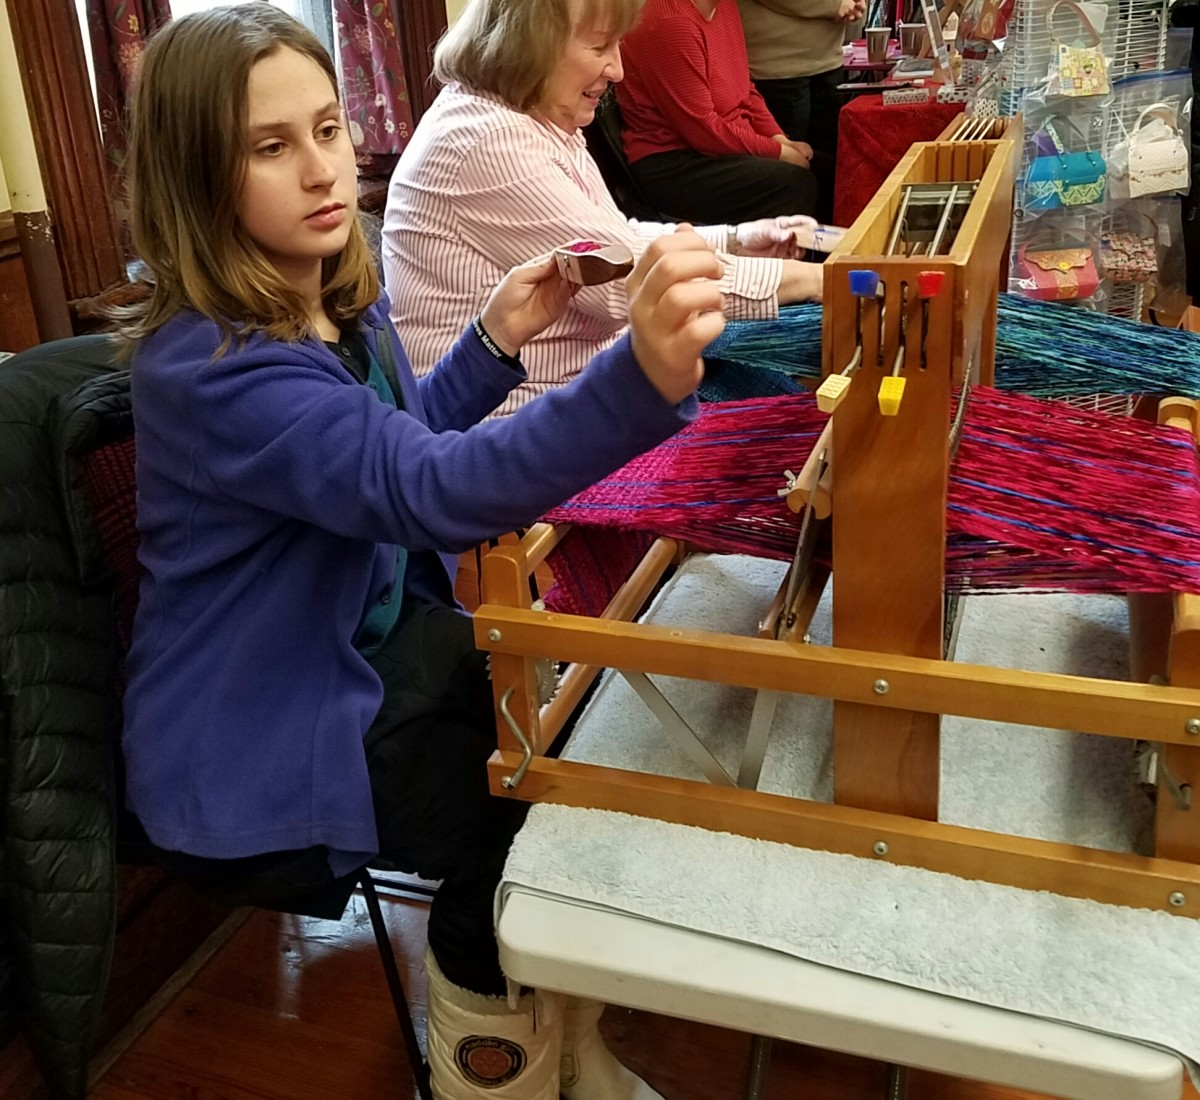 Learning to weave a winter scarf for herself at a recent local craft fair